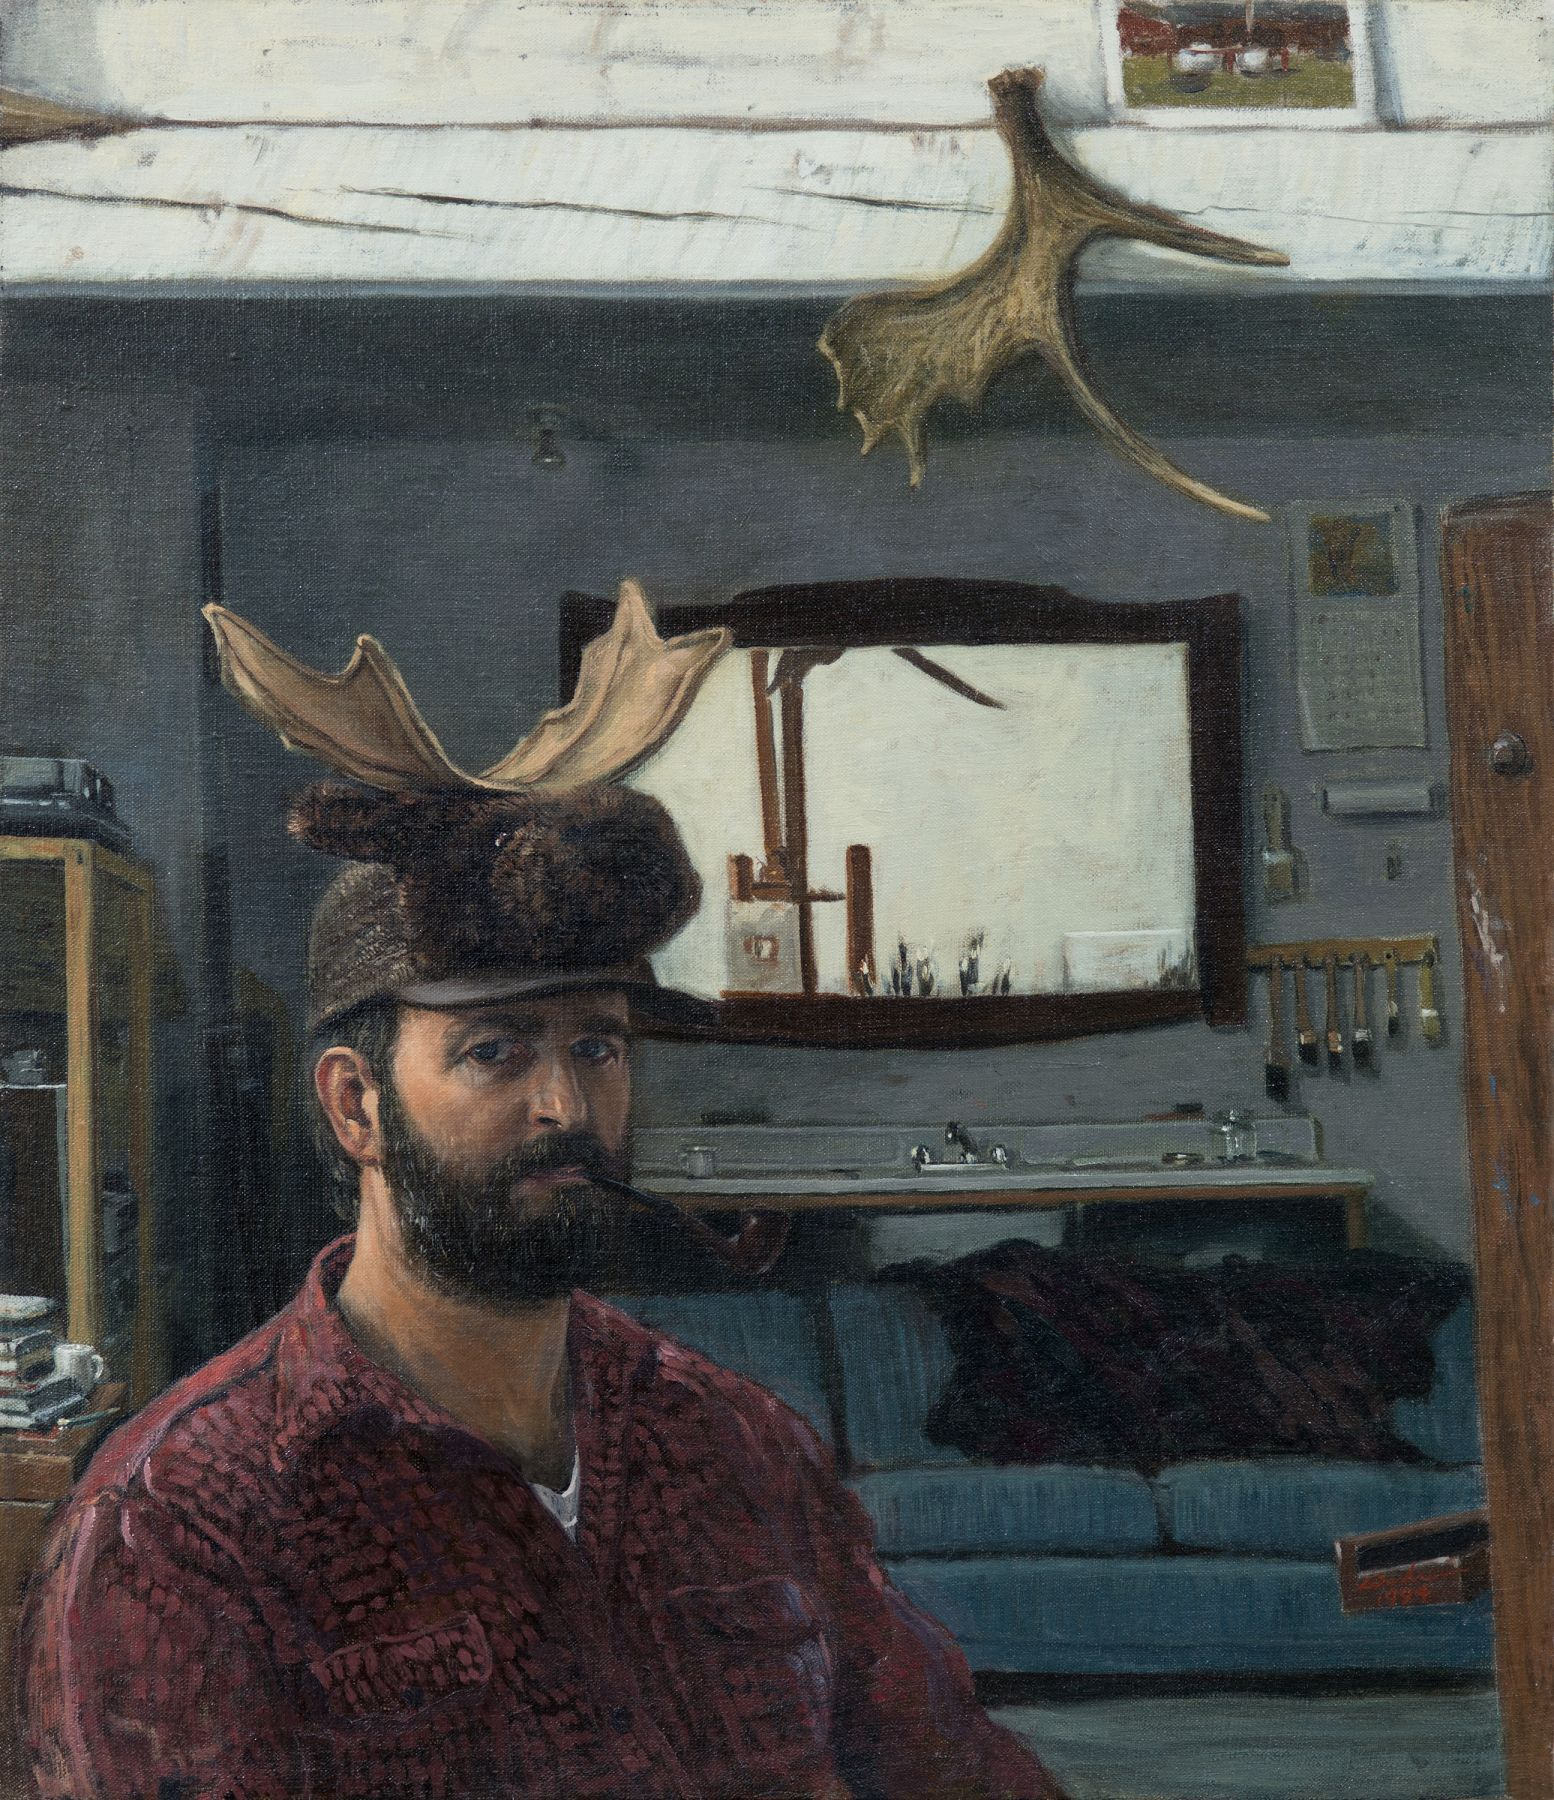 Linden Frederick, Self Portrait with Moose Hat, 1994, oil on linen, 13 x 15 inches